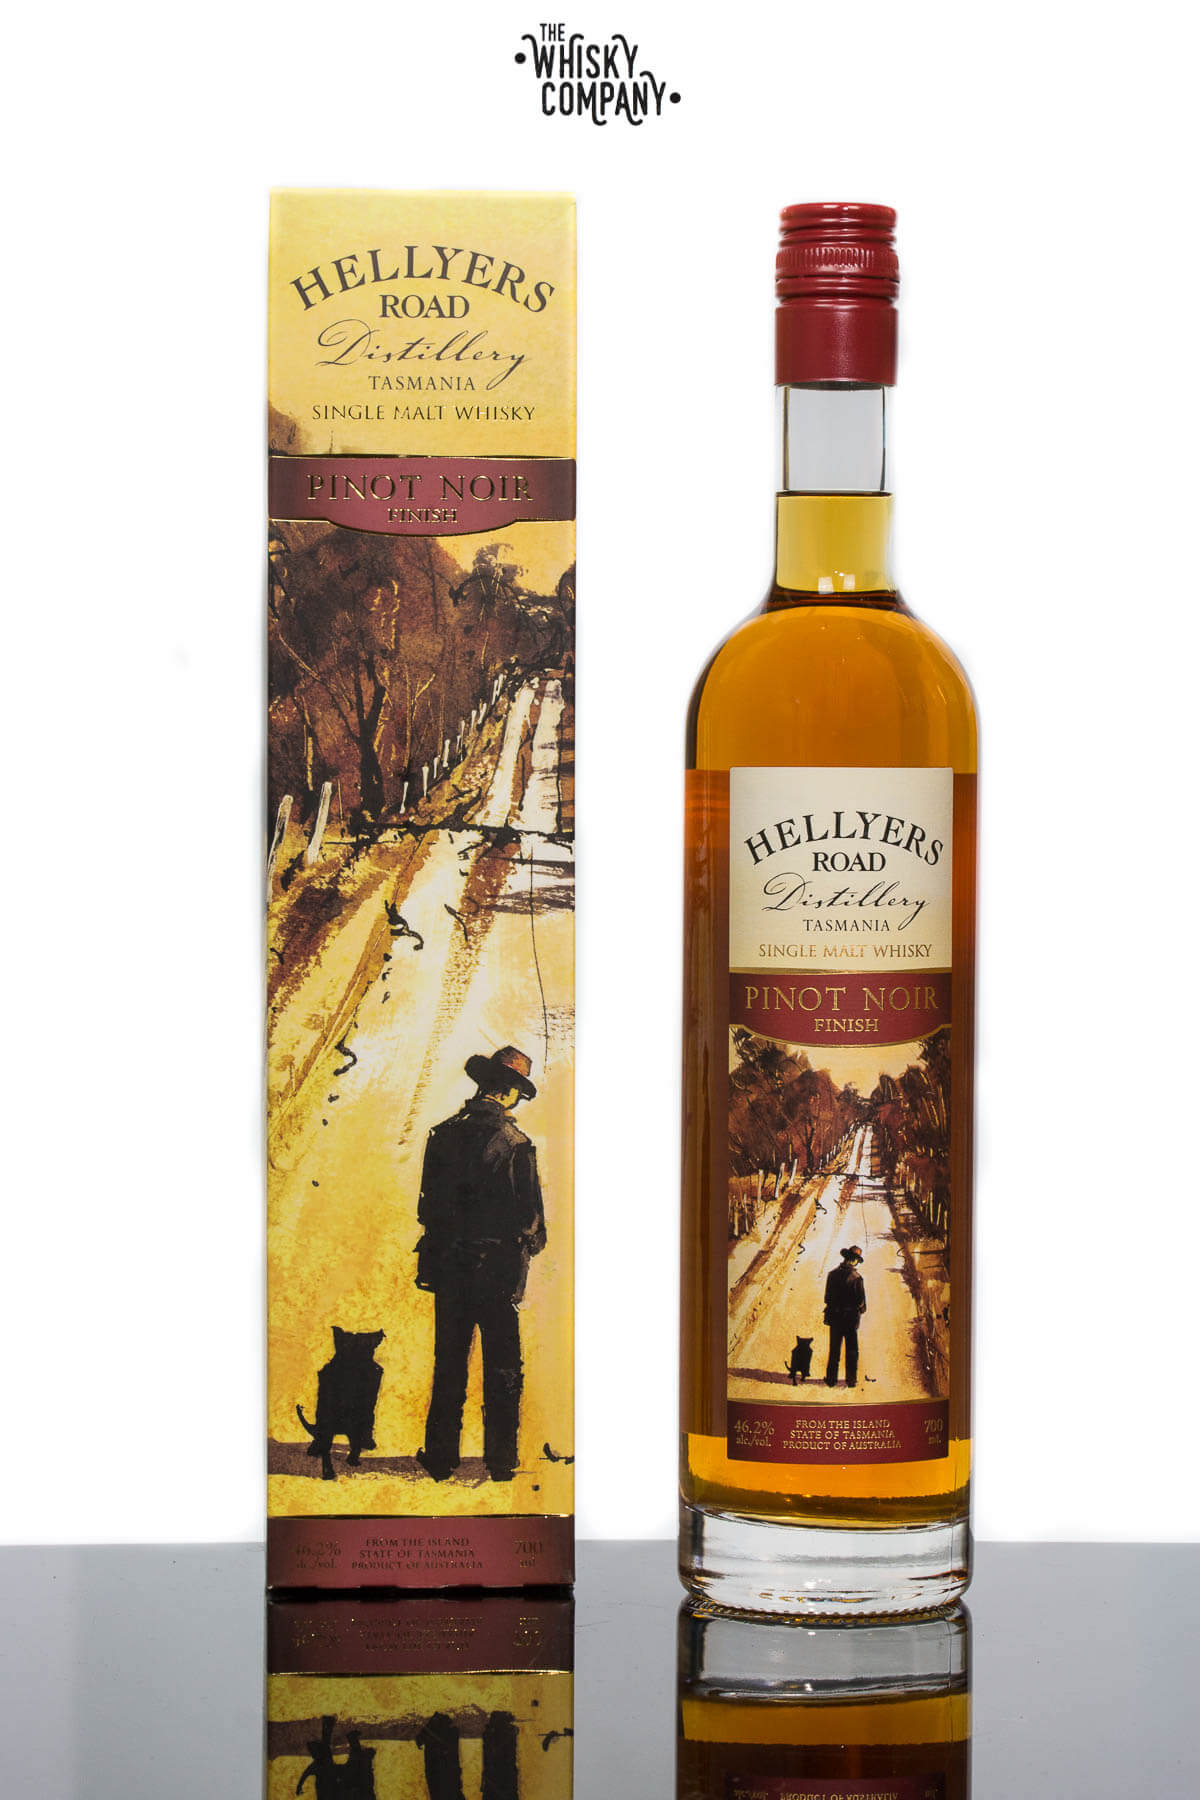 Hellyers Road Pinot Noir Finish Australian Single Malt Whisky (700ml)